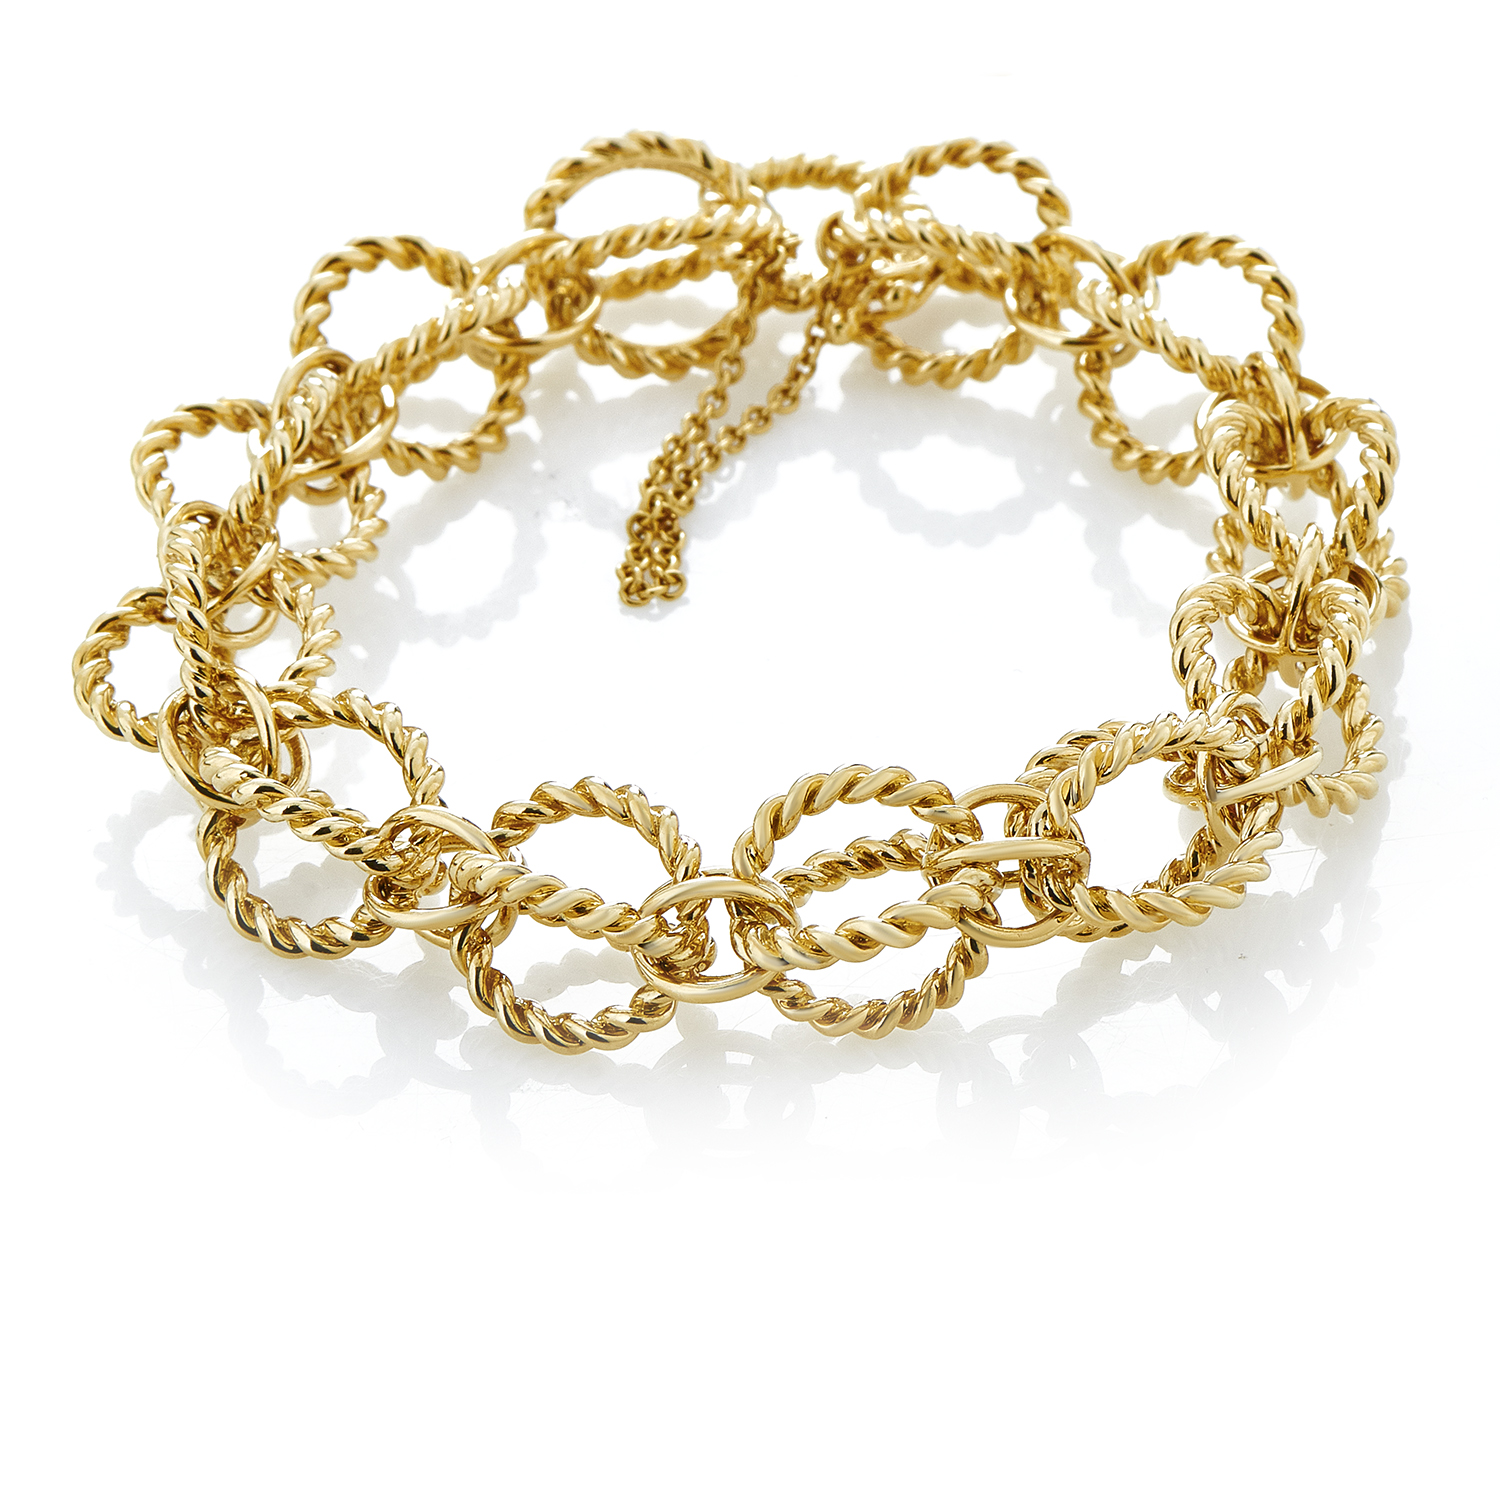 Tiffany & Co. Schlumberger Women's 18K Yellow Gold Cage Link Bracelet